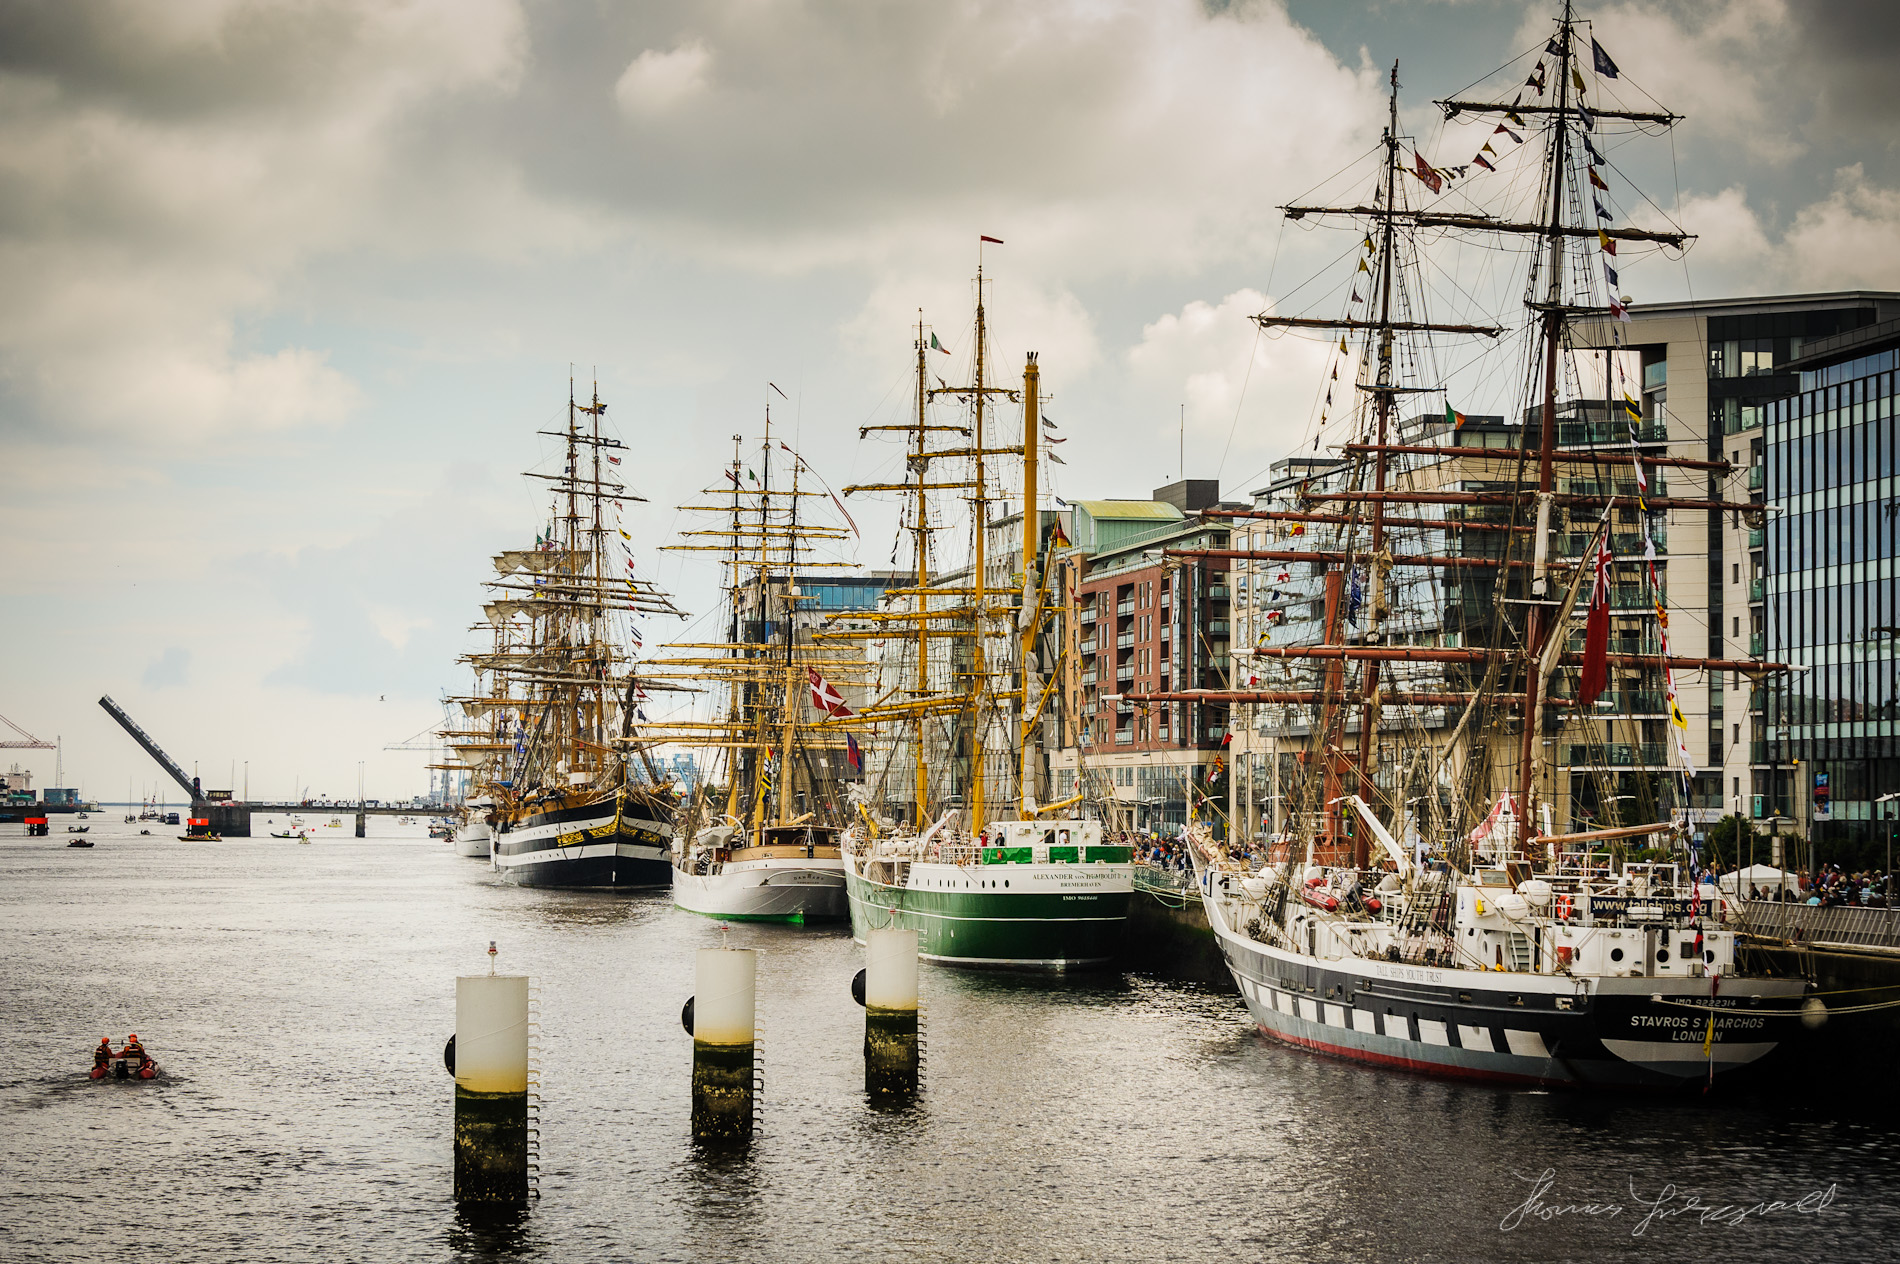 Tall Ships docked at the quay side on the river Liffey